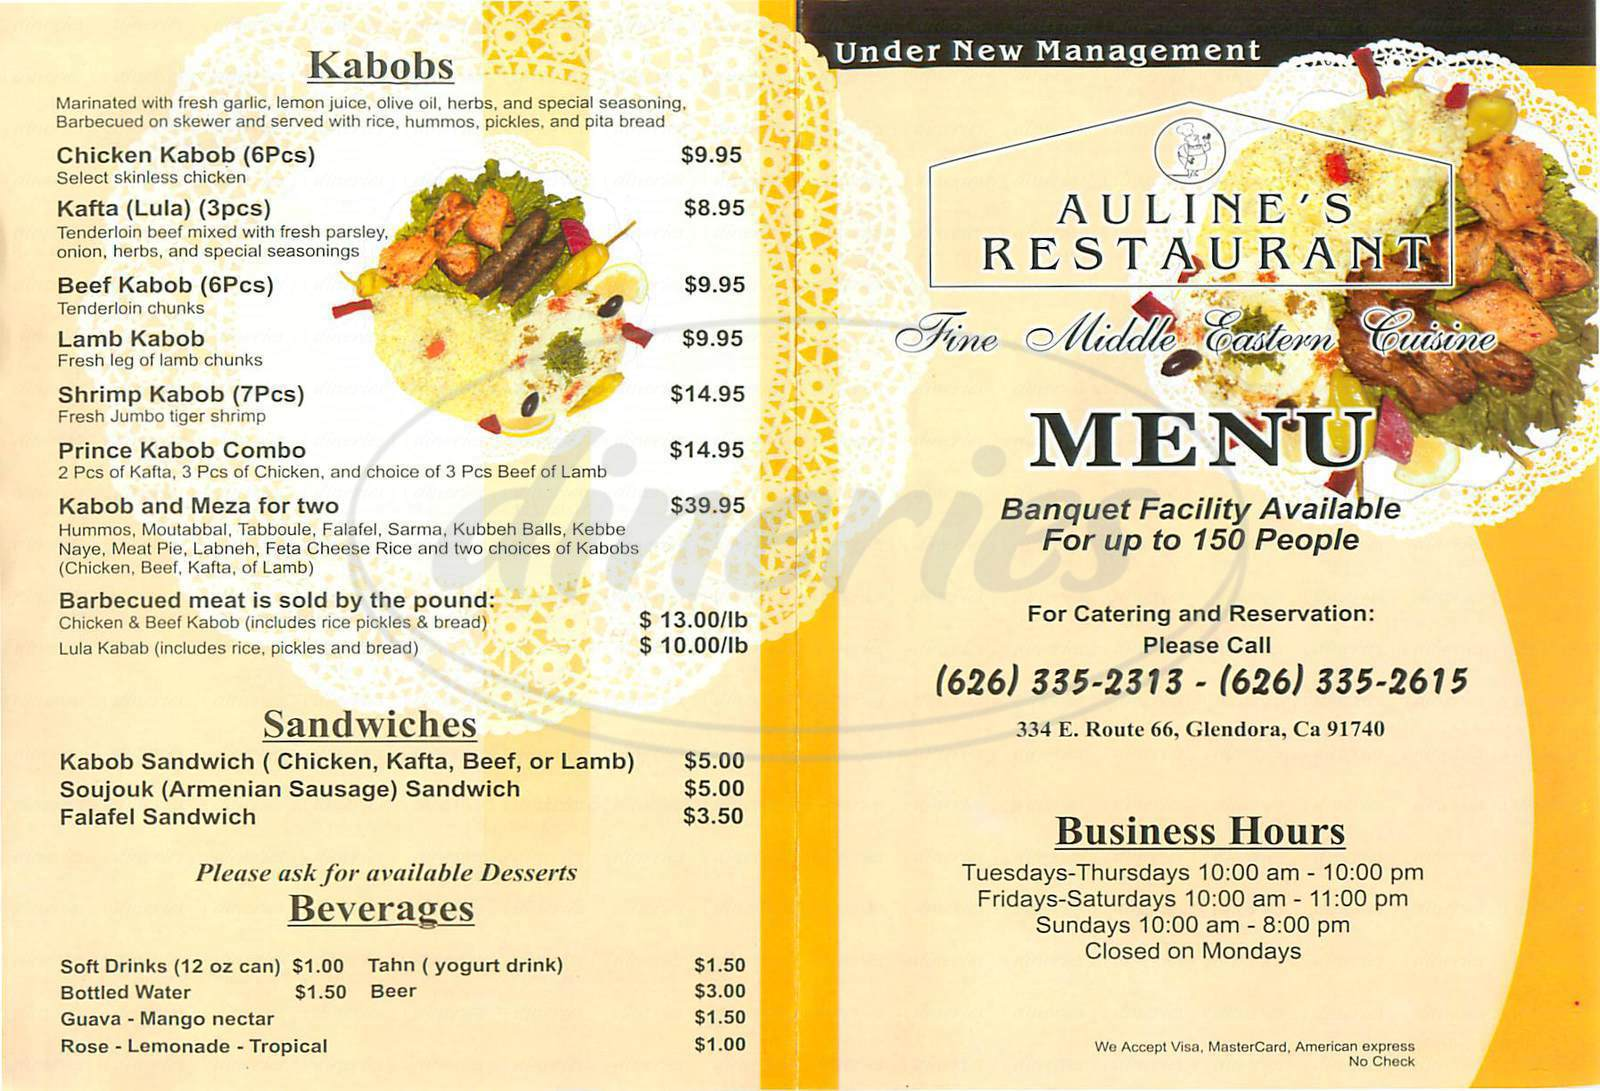 menu for Auline's Restaurant